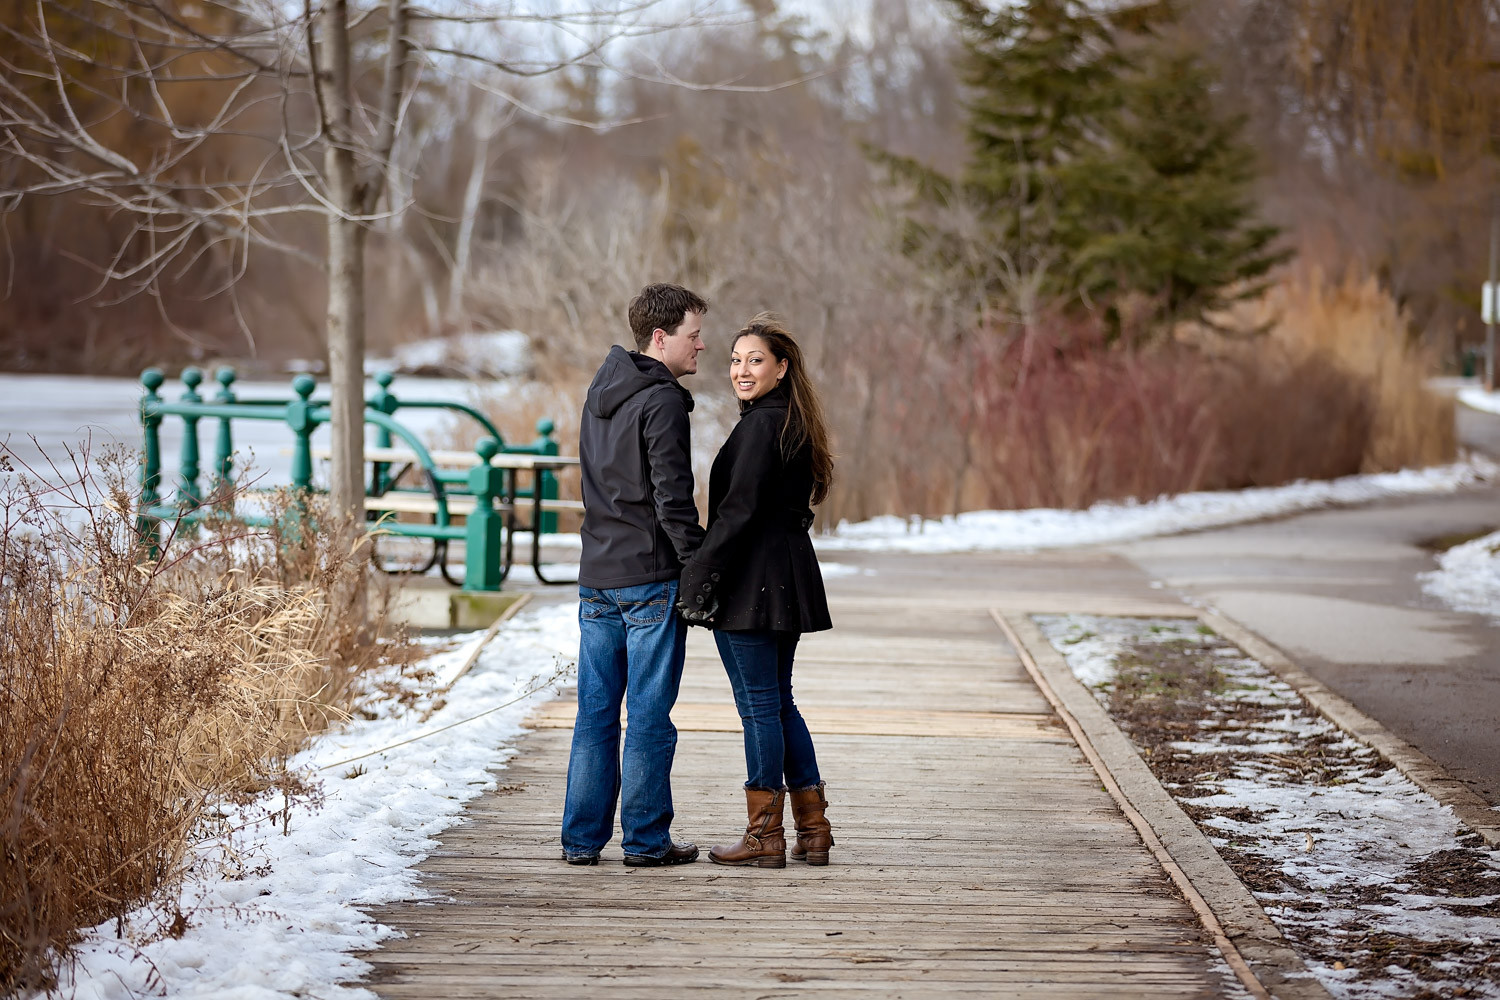 mill pond park winter engagement richmond hill Toronto wedding photographer